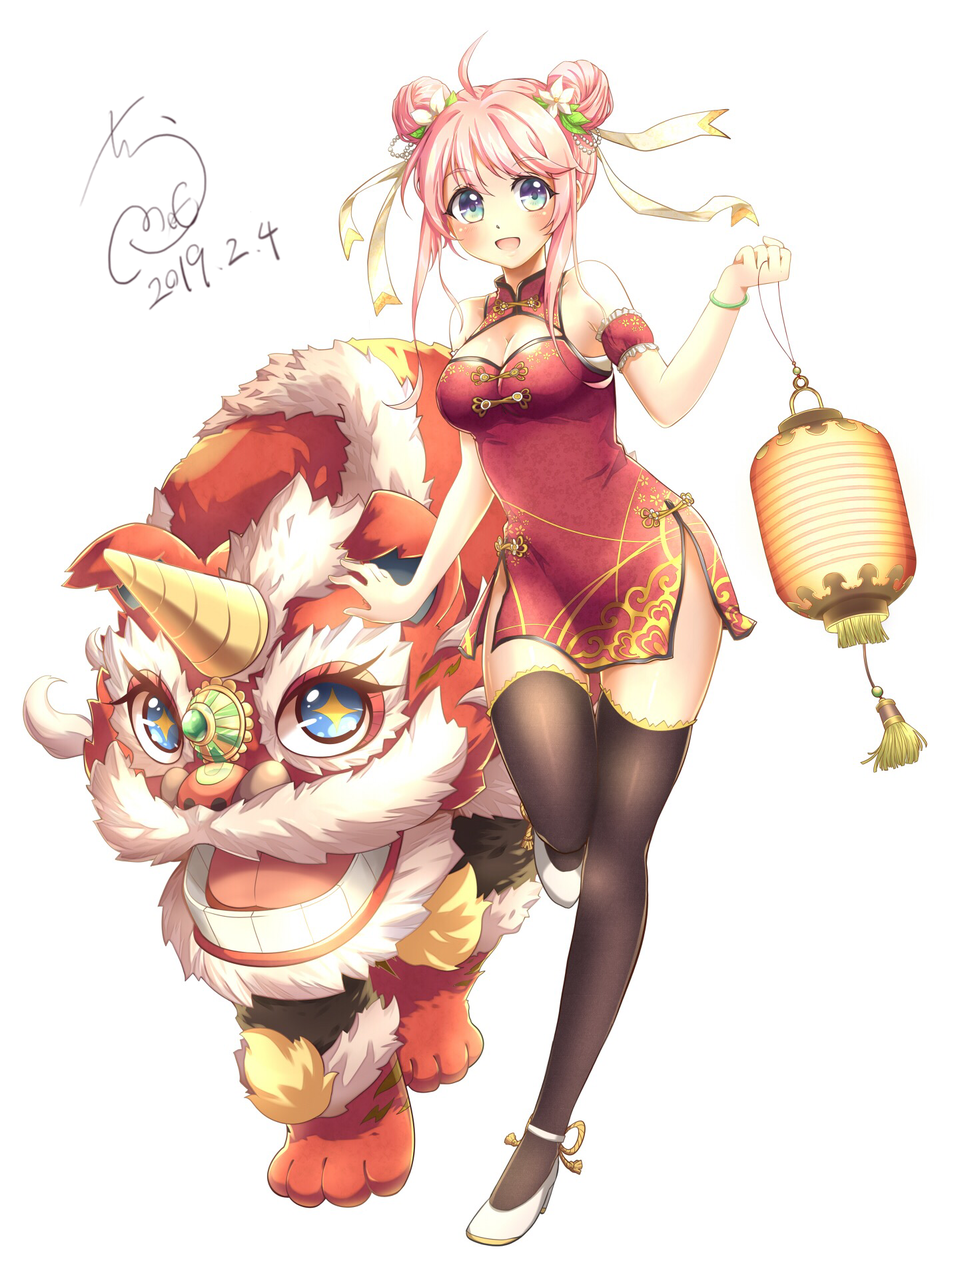 新年快乐 Happy new year! Illust of Crome萌 medibangpaint